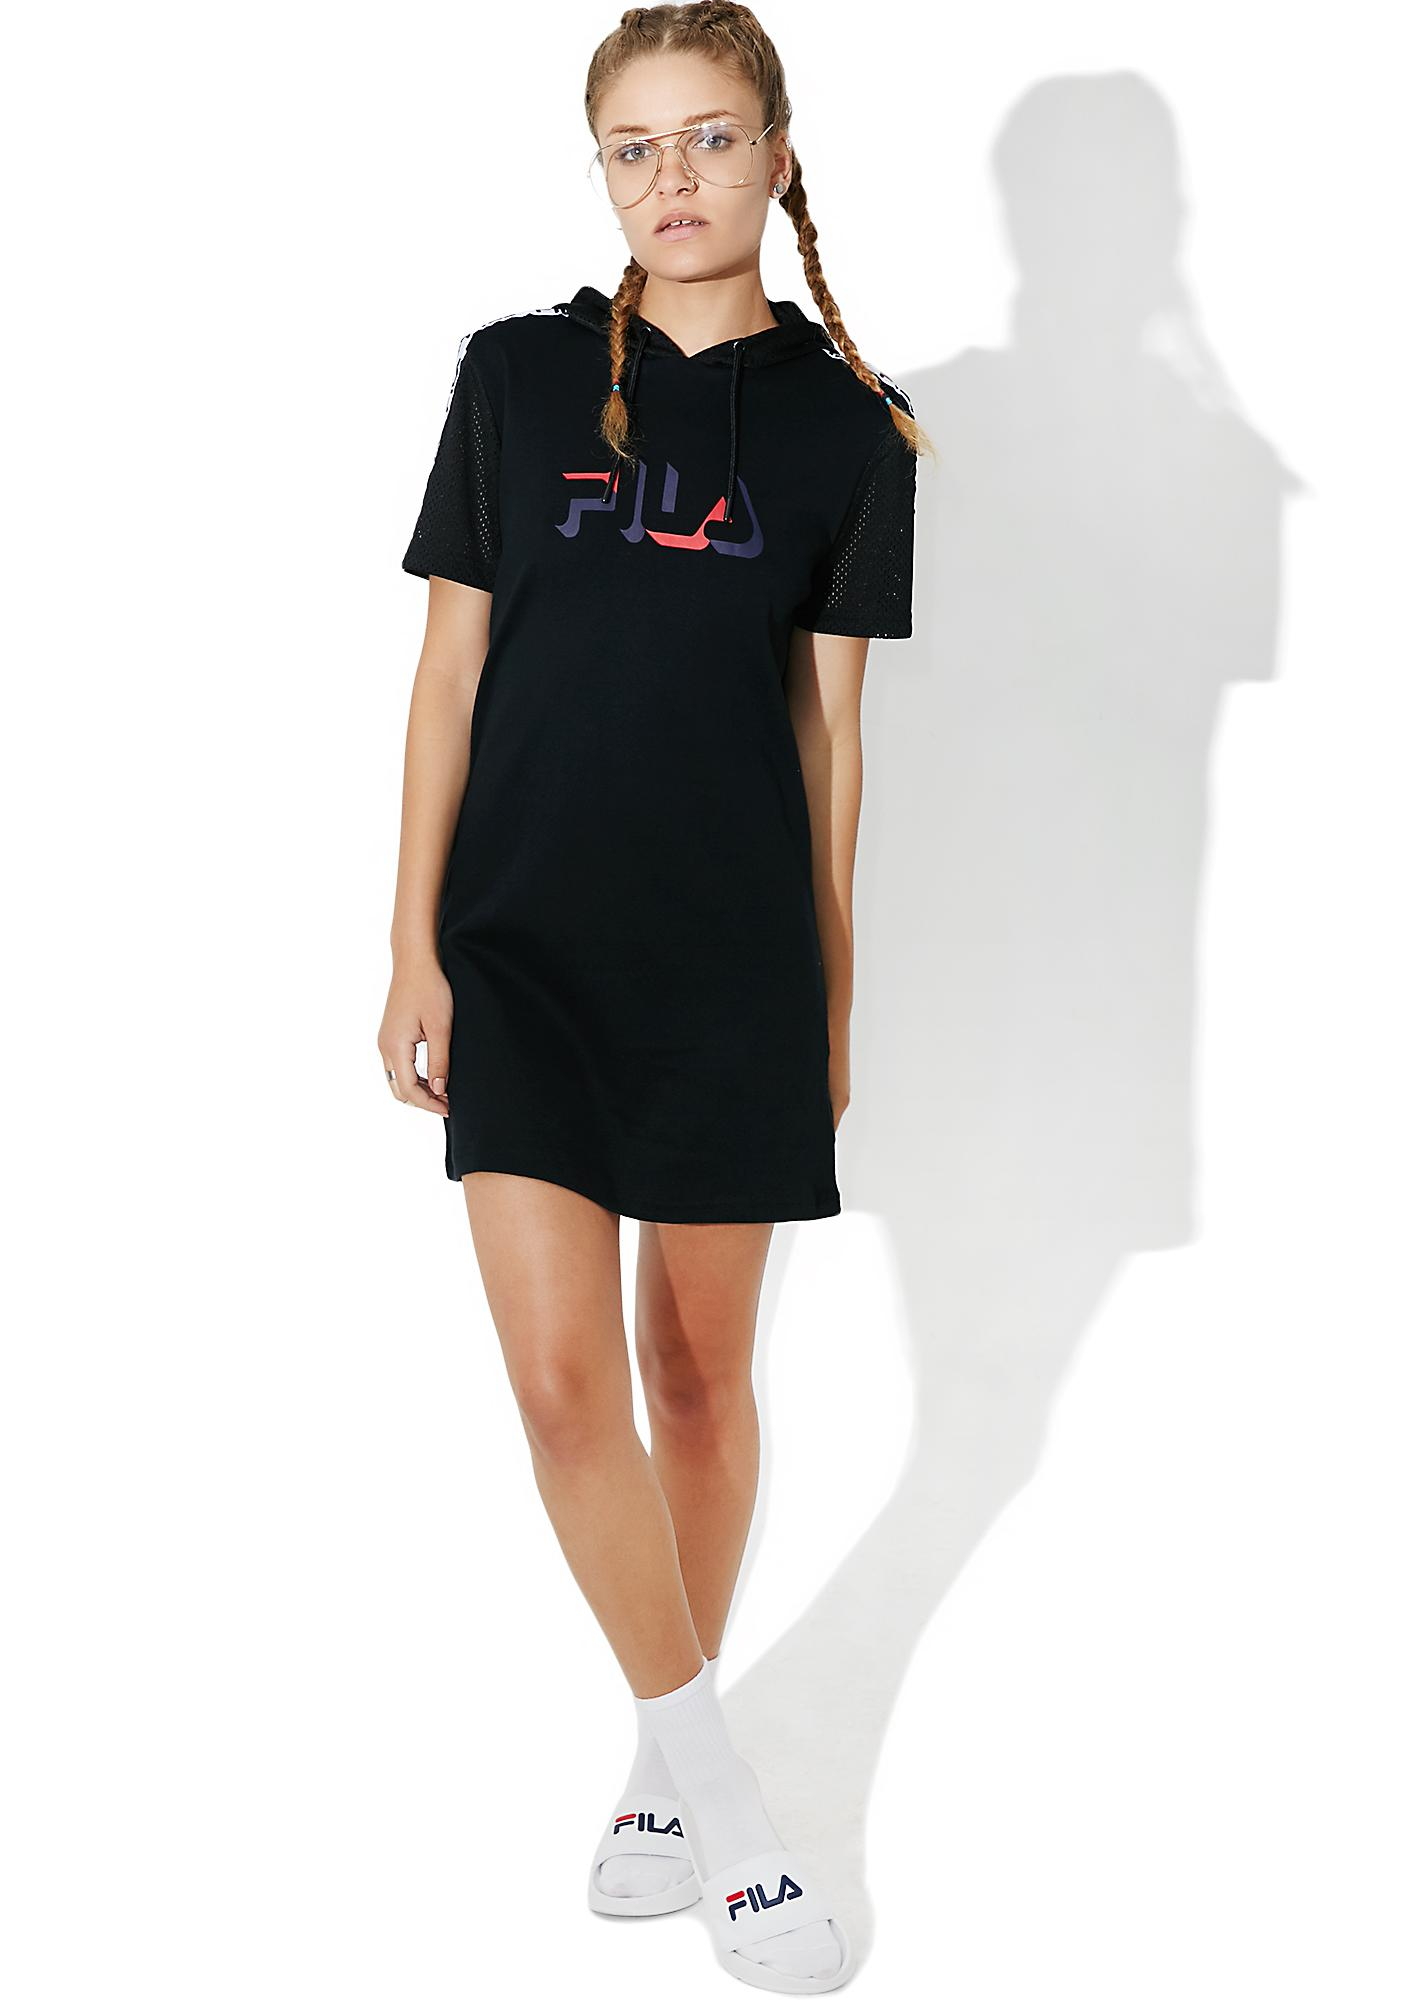 fila mini dress